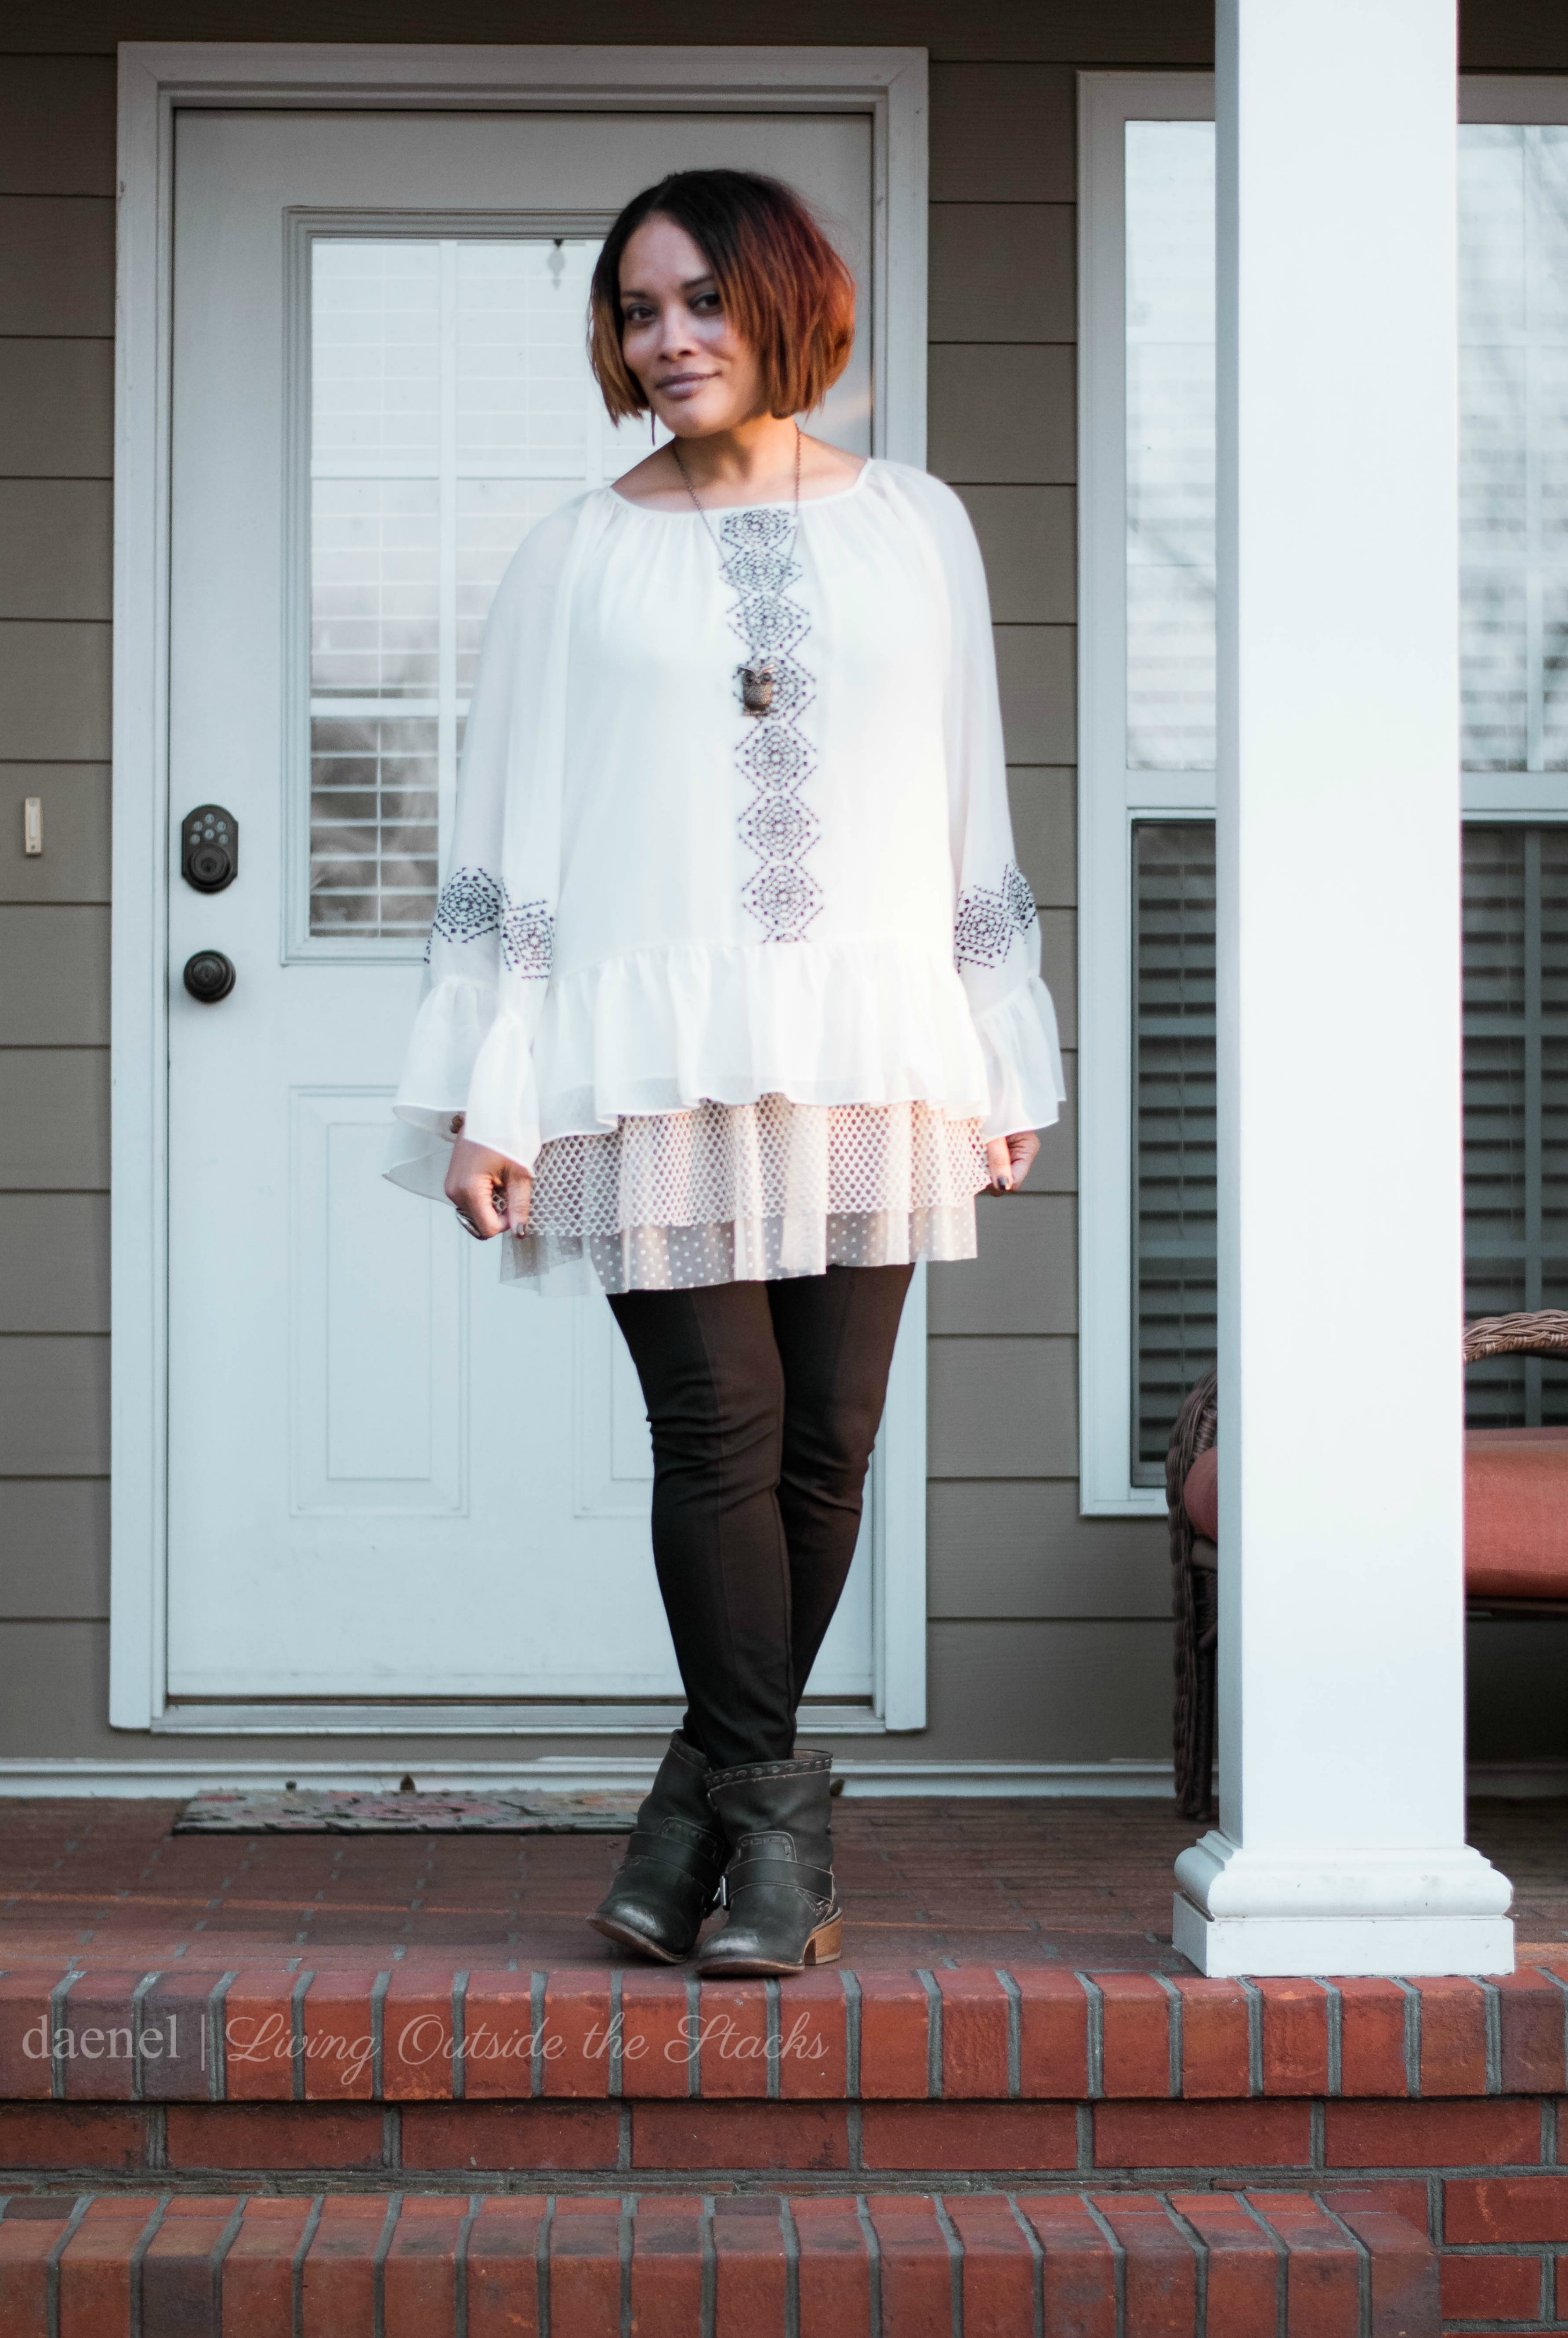 Aztec Print Blouse Tulle Tunic Leggings and Black Booties {living outside the stacks}